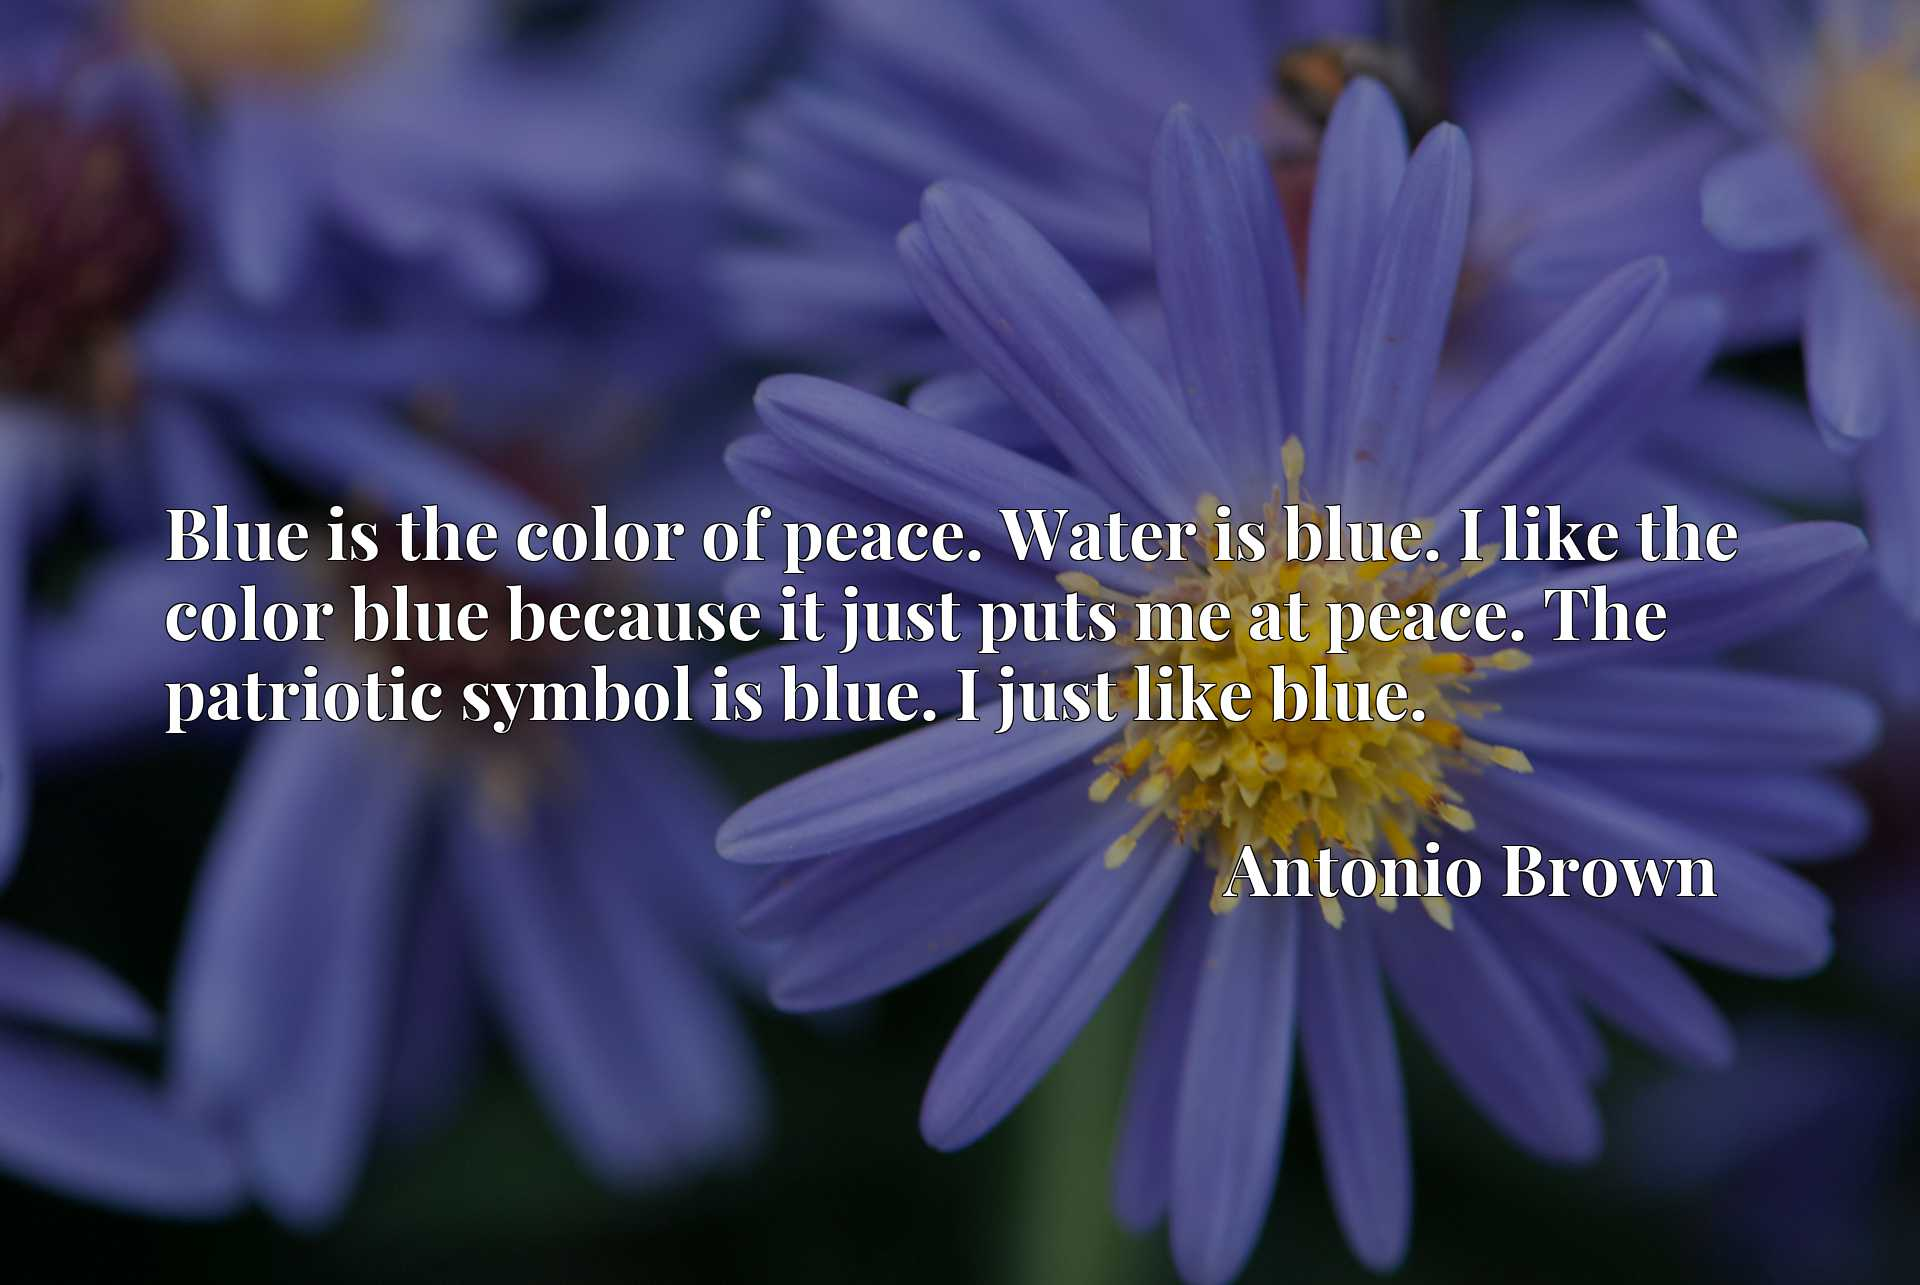 Blue is the color of peace. Water is blue. I like the color blue because it just puts me at peace. The patriotic symbol is blue. I just like blue.